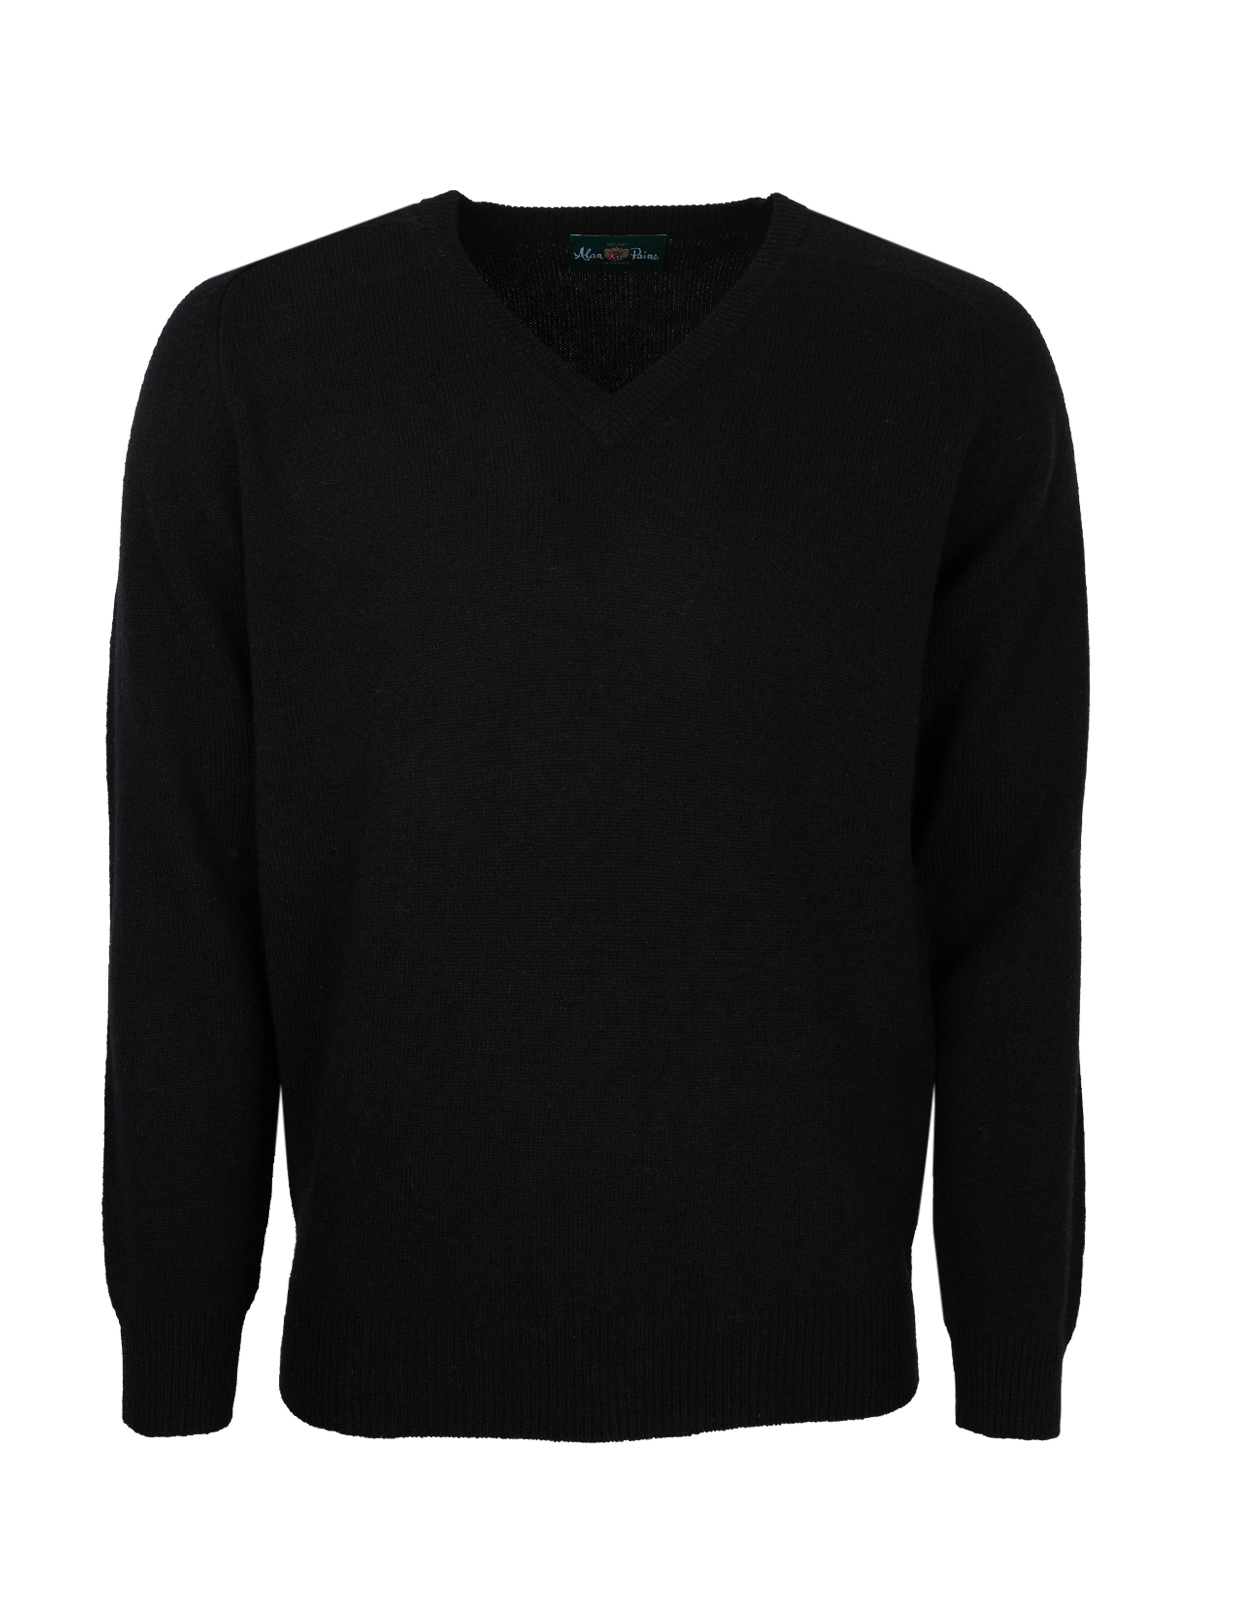 Kilsyth Vee Neck Black